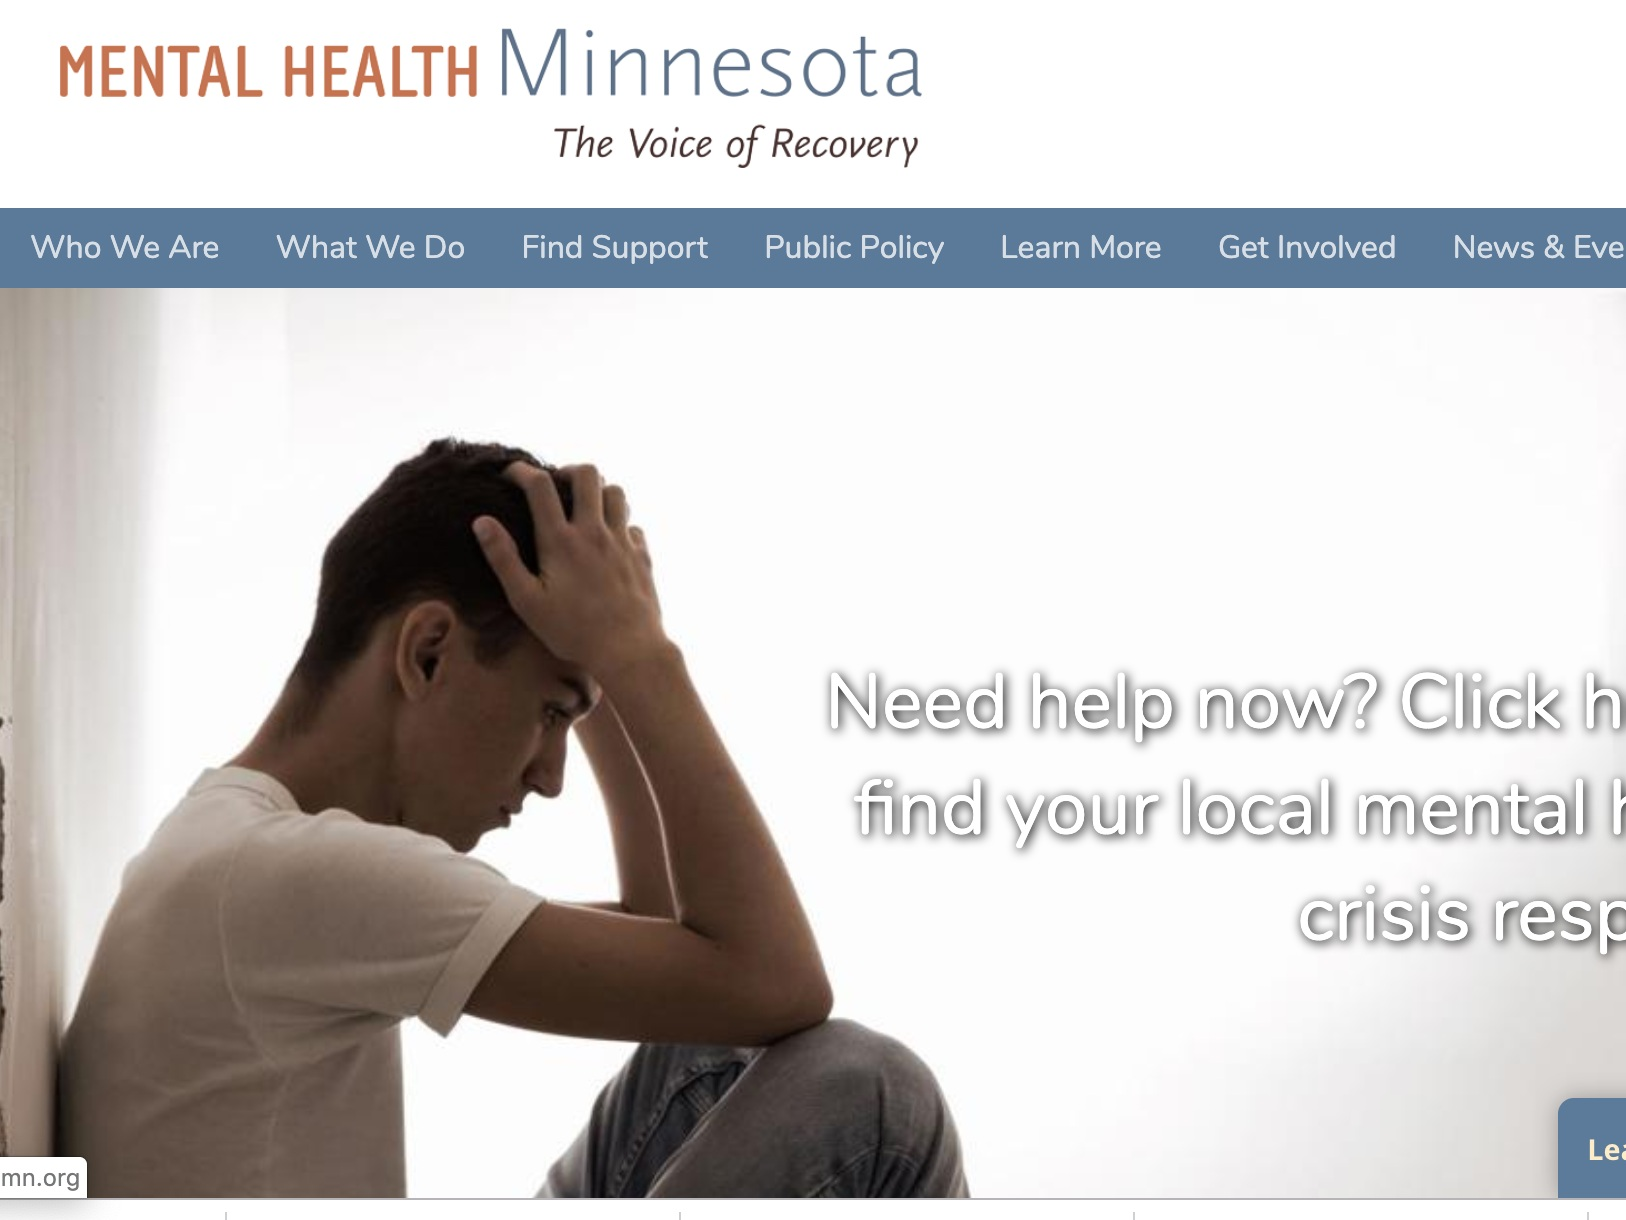 mental health minnesota - Mental Health Minnesota runs the state's Warm Line which is a peer to peer support service available Monday through Saturday from 5pm to 10pm.